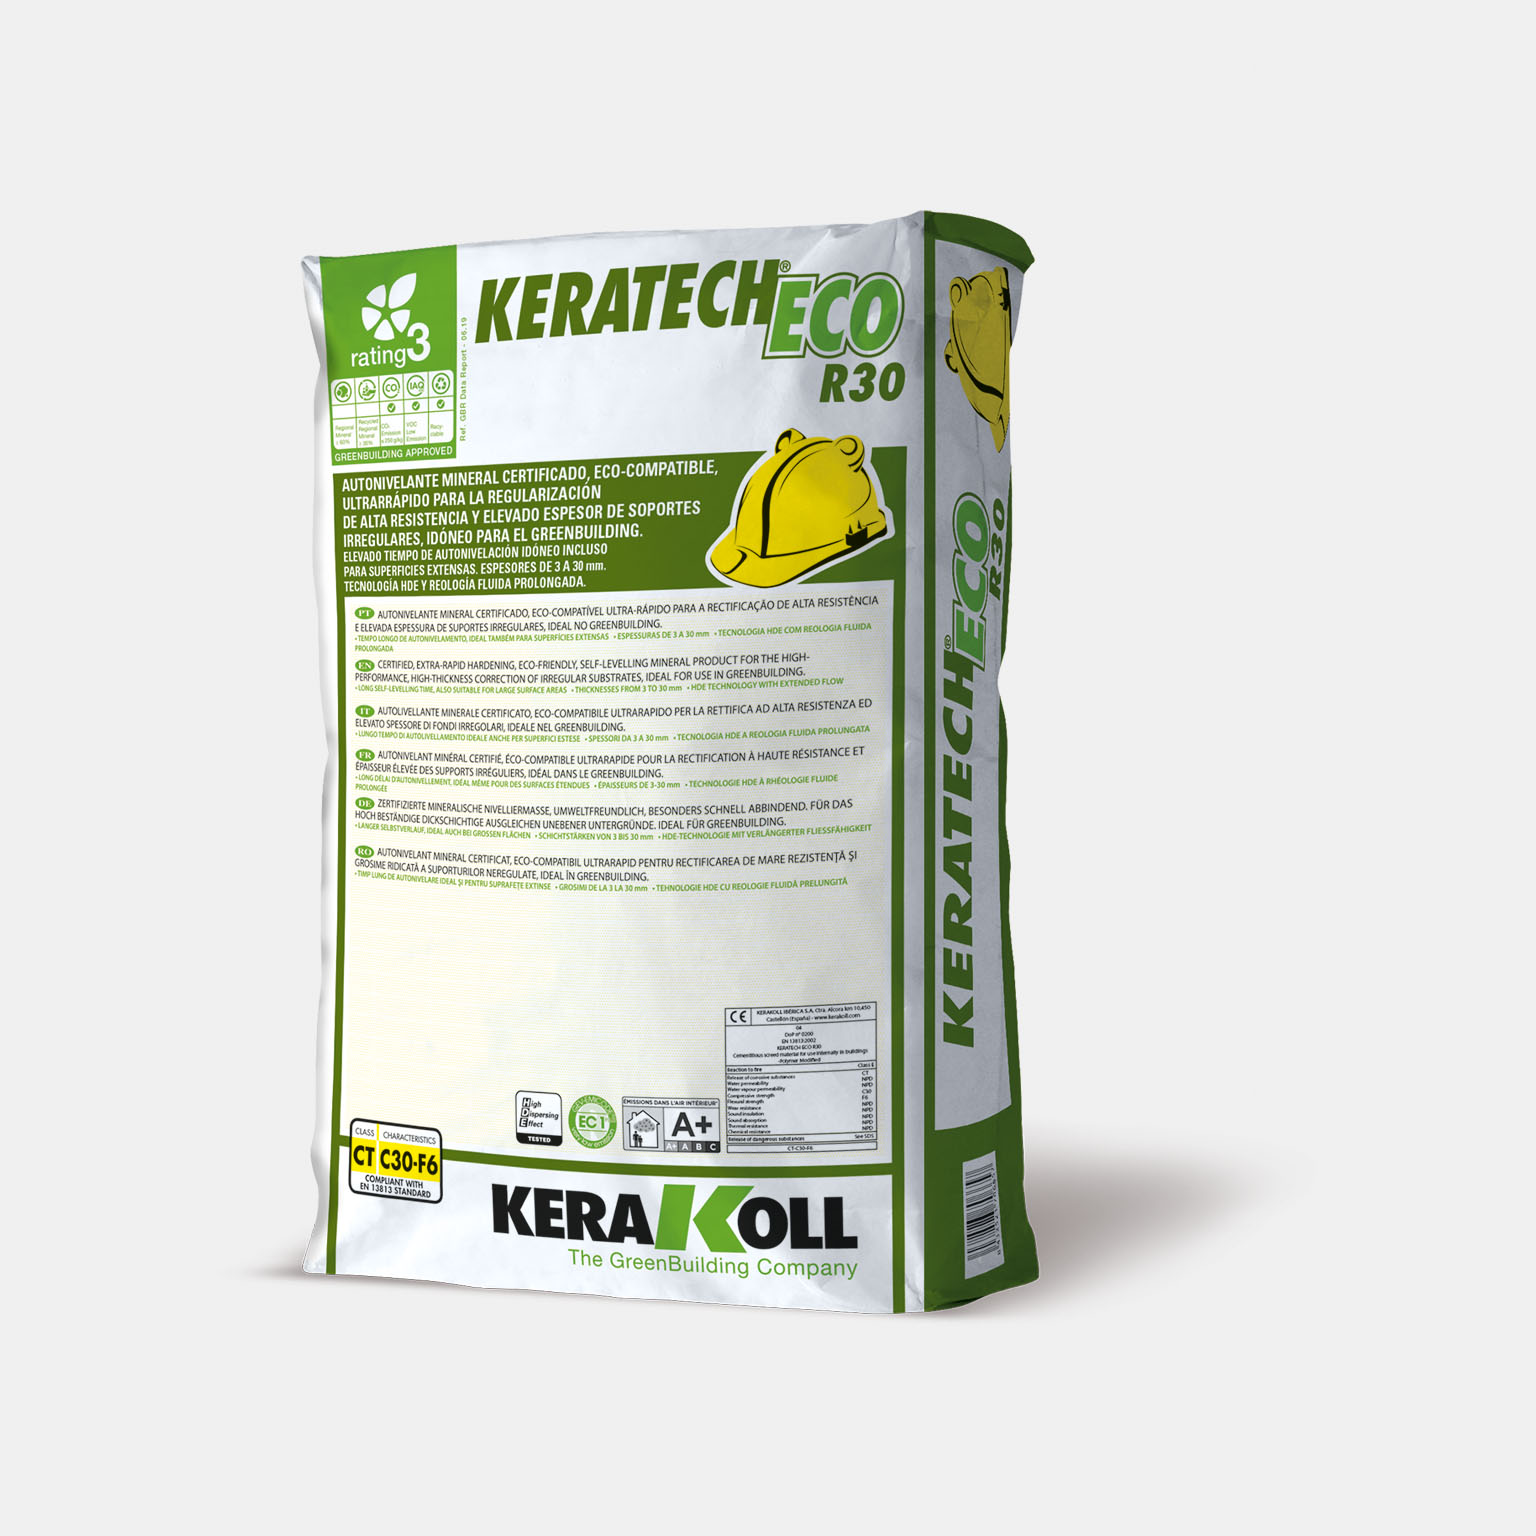 Keratech Eco R30 - immagine pack